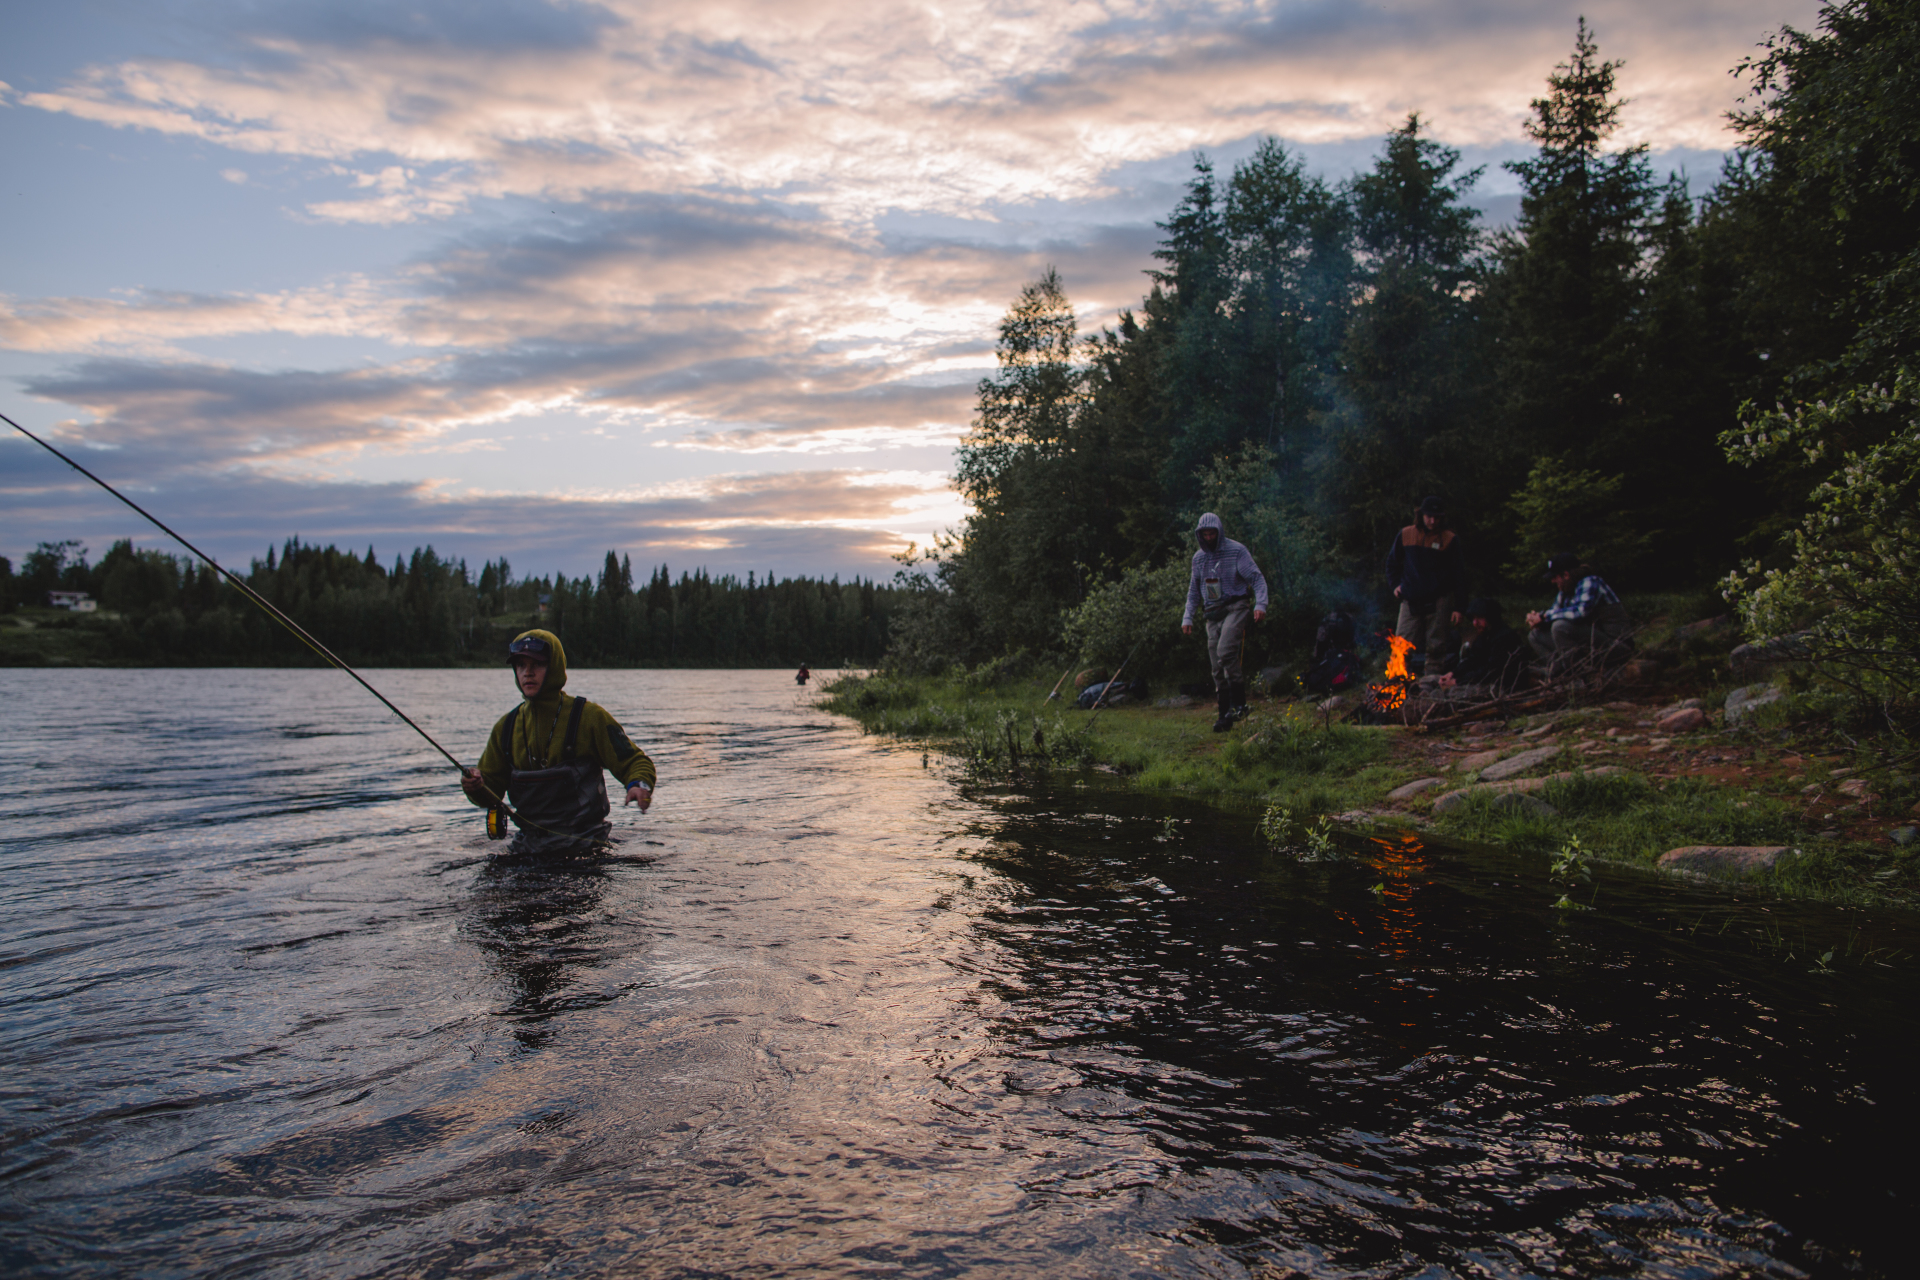 Night fishing in Laino river Swedish Lapland